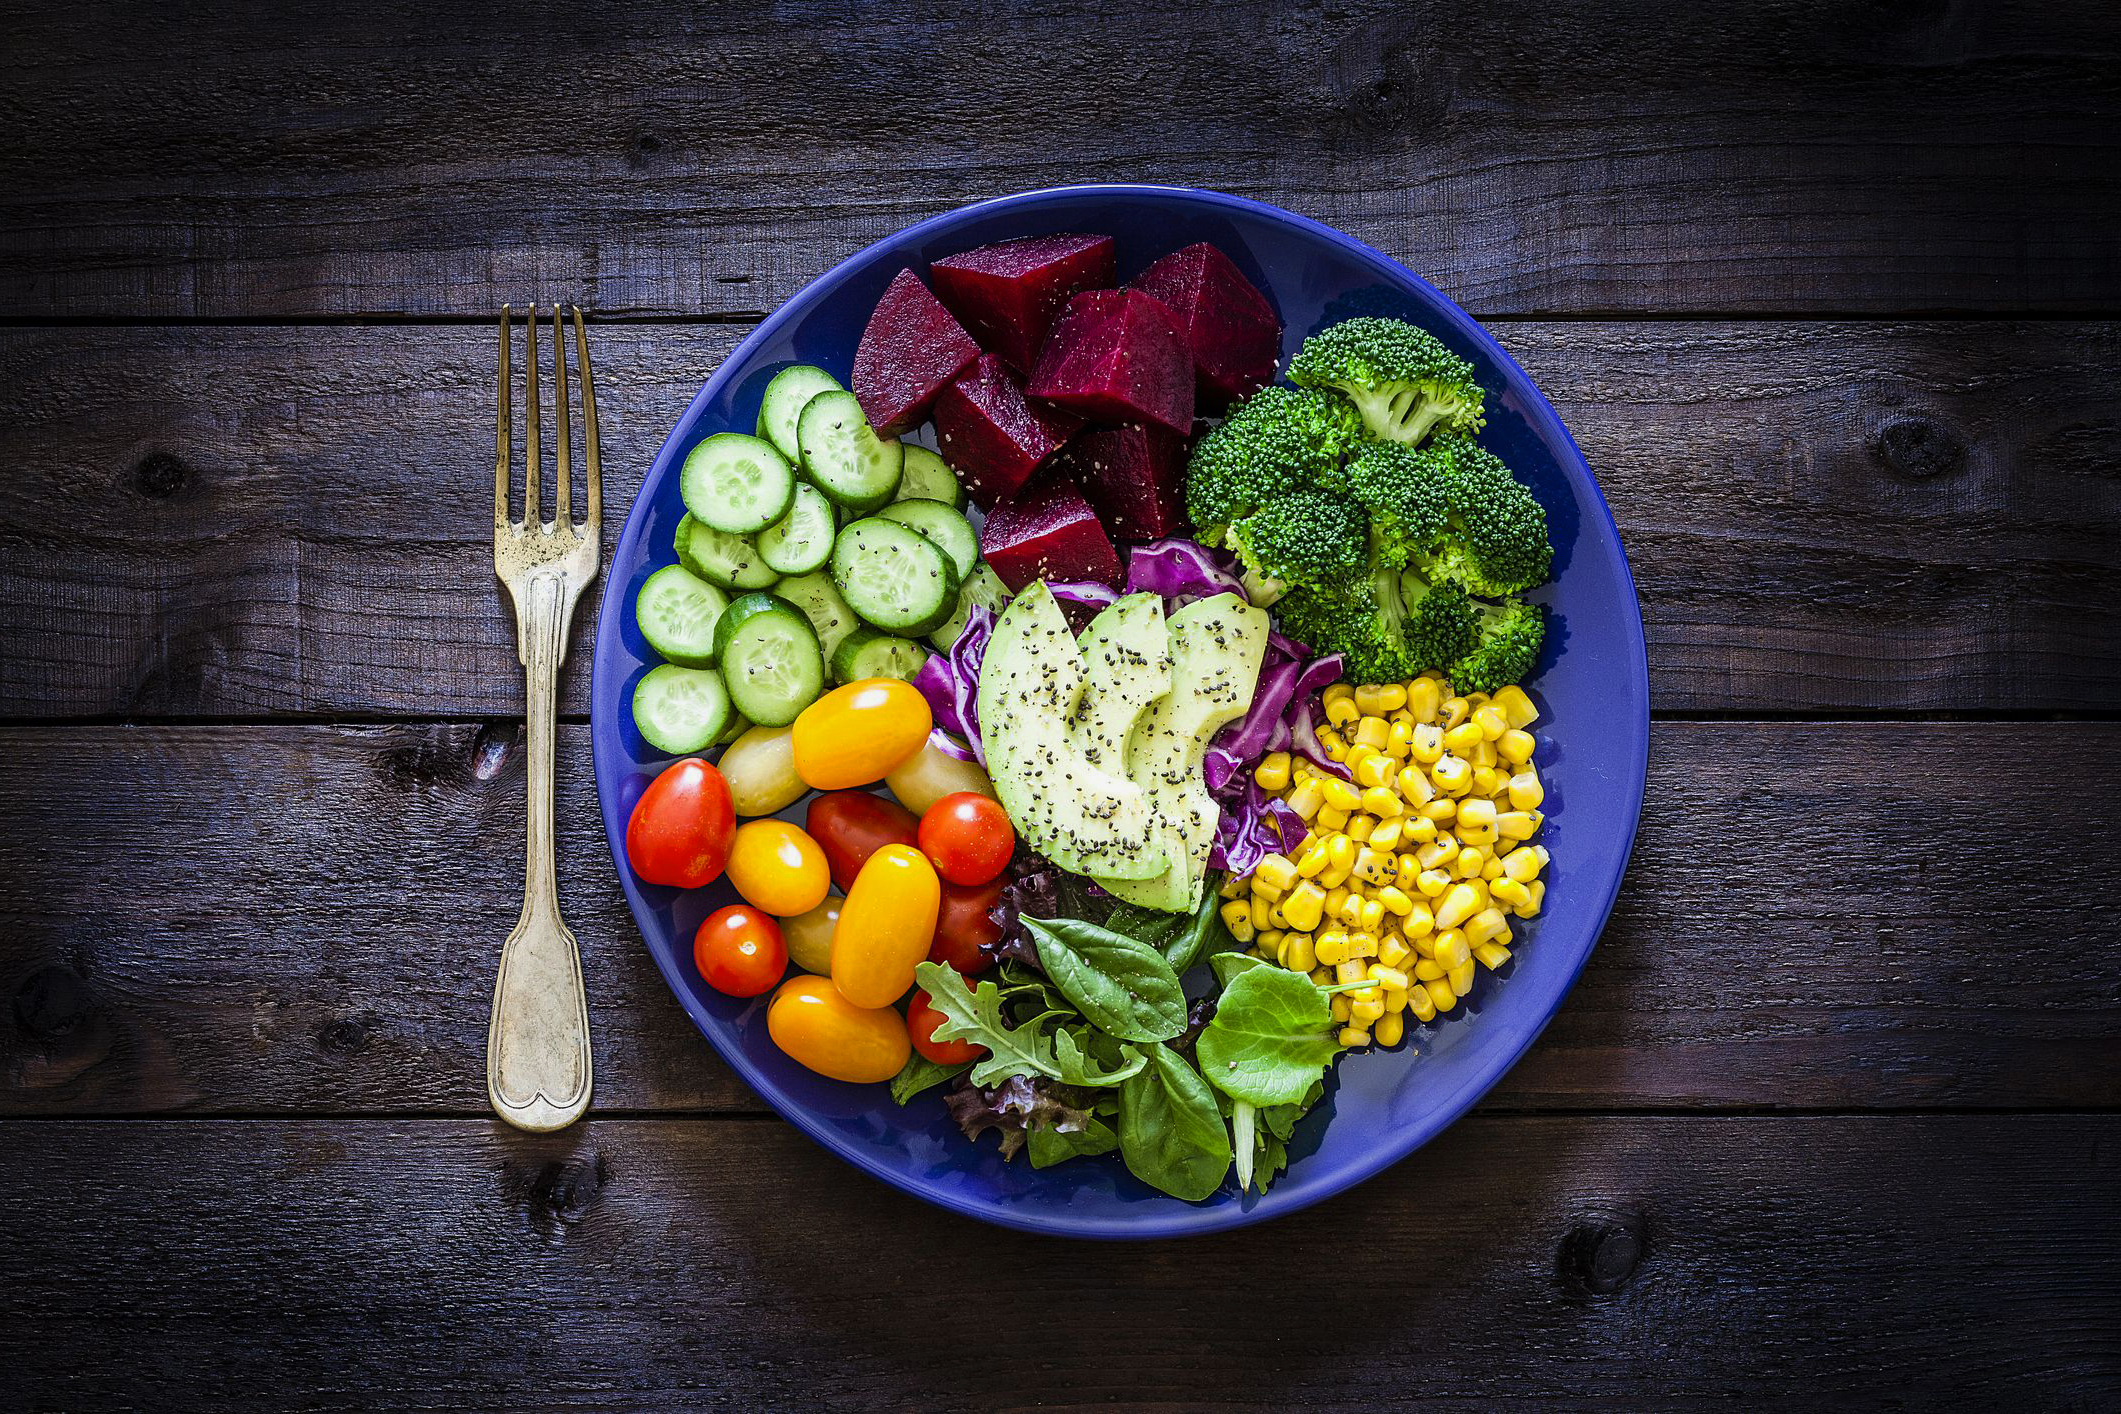 salad-mix-plate-shot-from-above-on-rustic-wooden-royalty-free-image-1018199524-1556130377